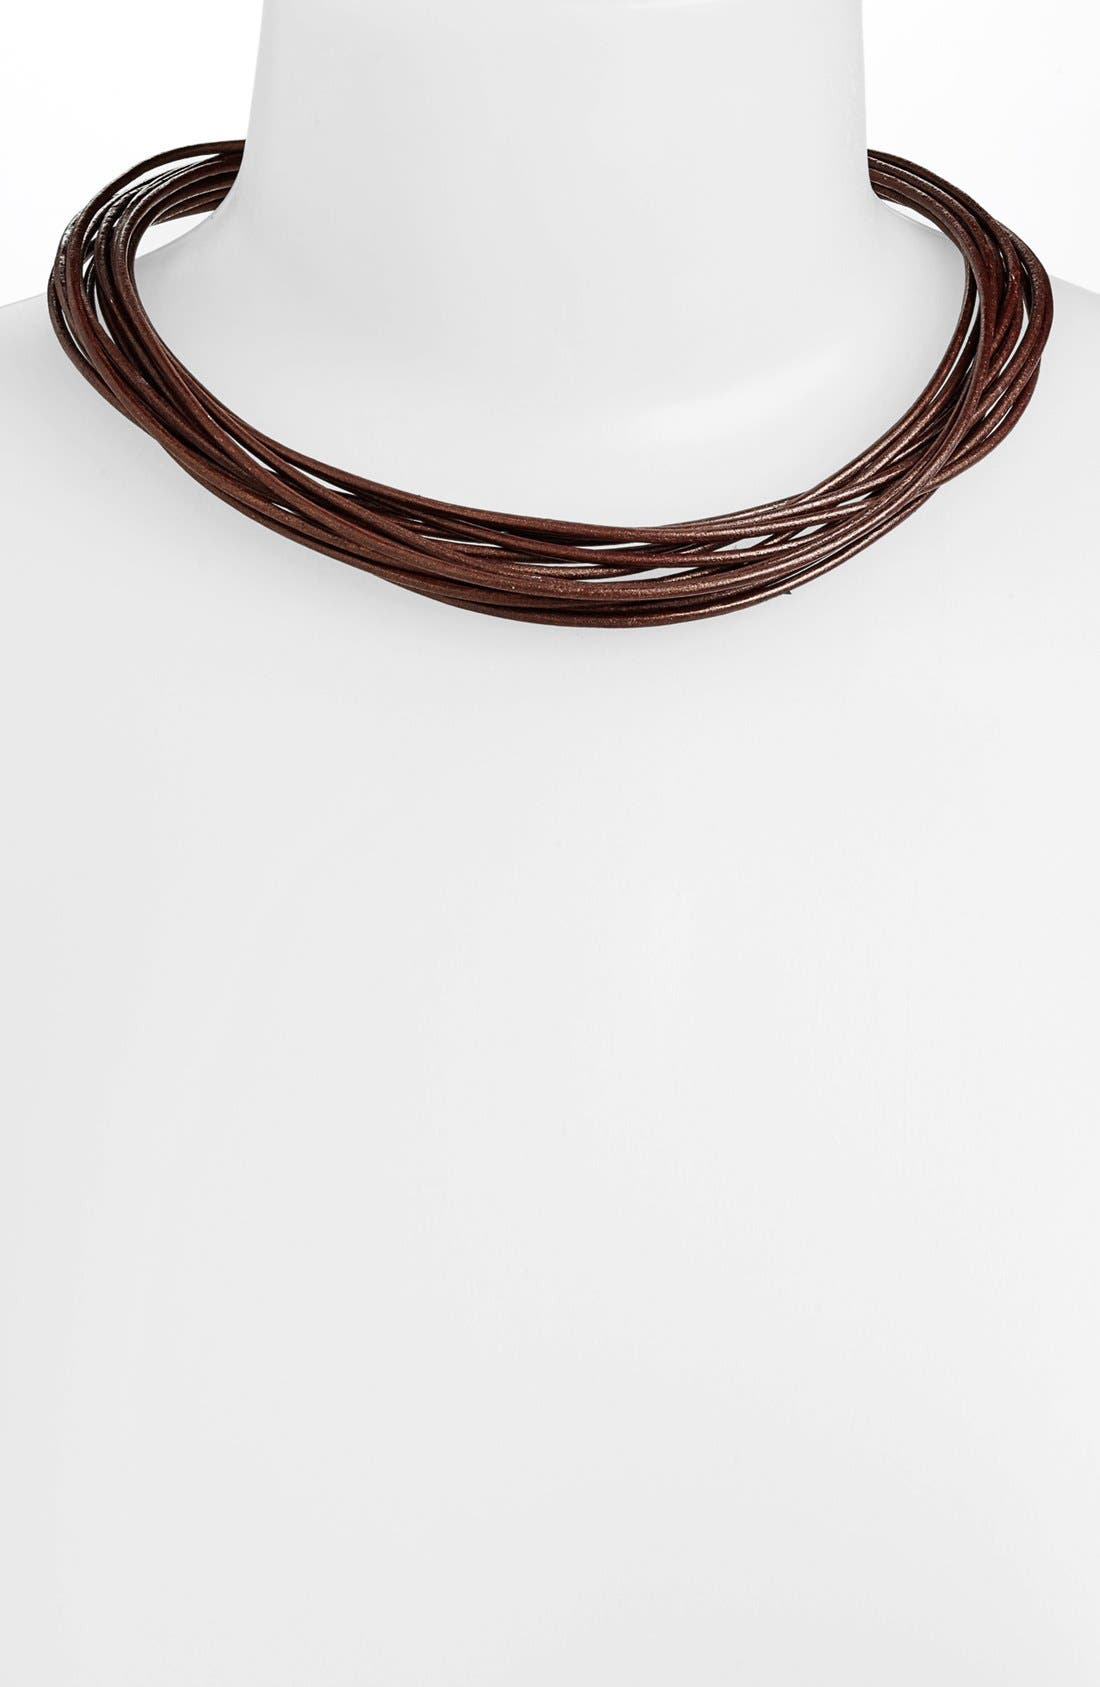 Alternate Image 1 Selected - Simon Sebbag Multistrand Leather Necklace